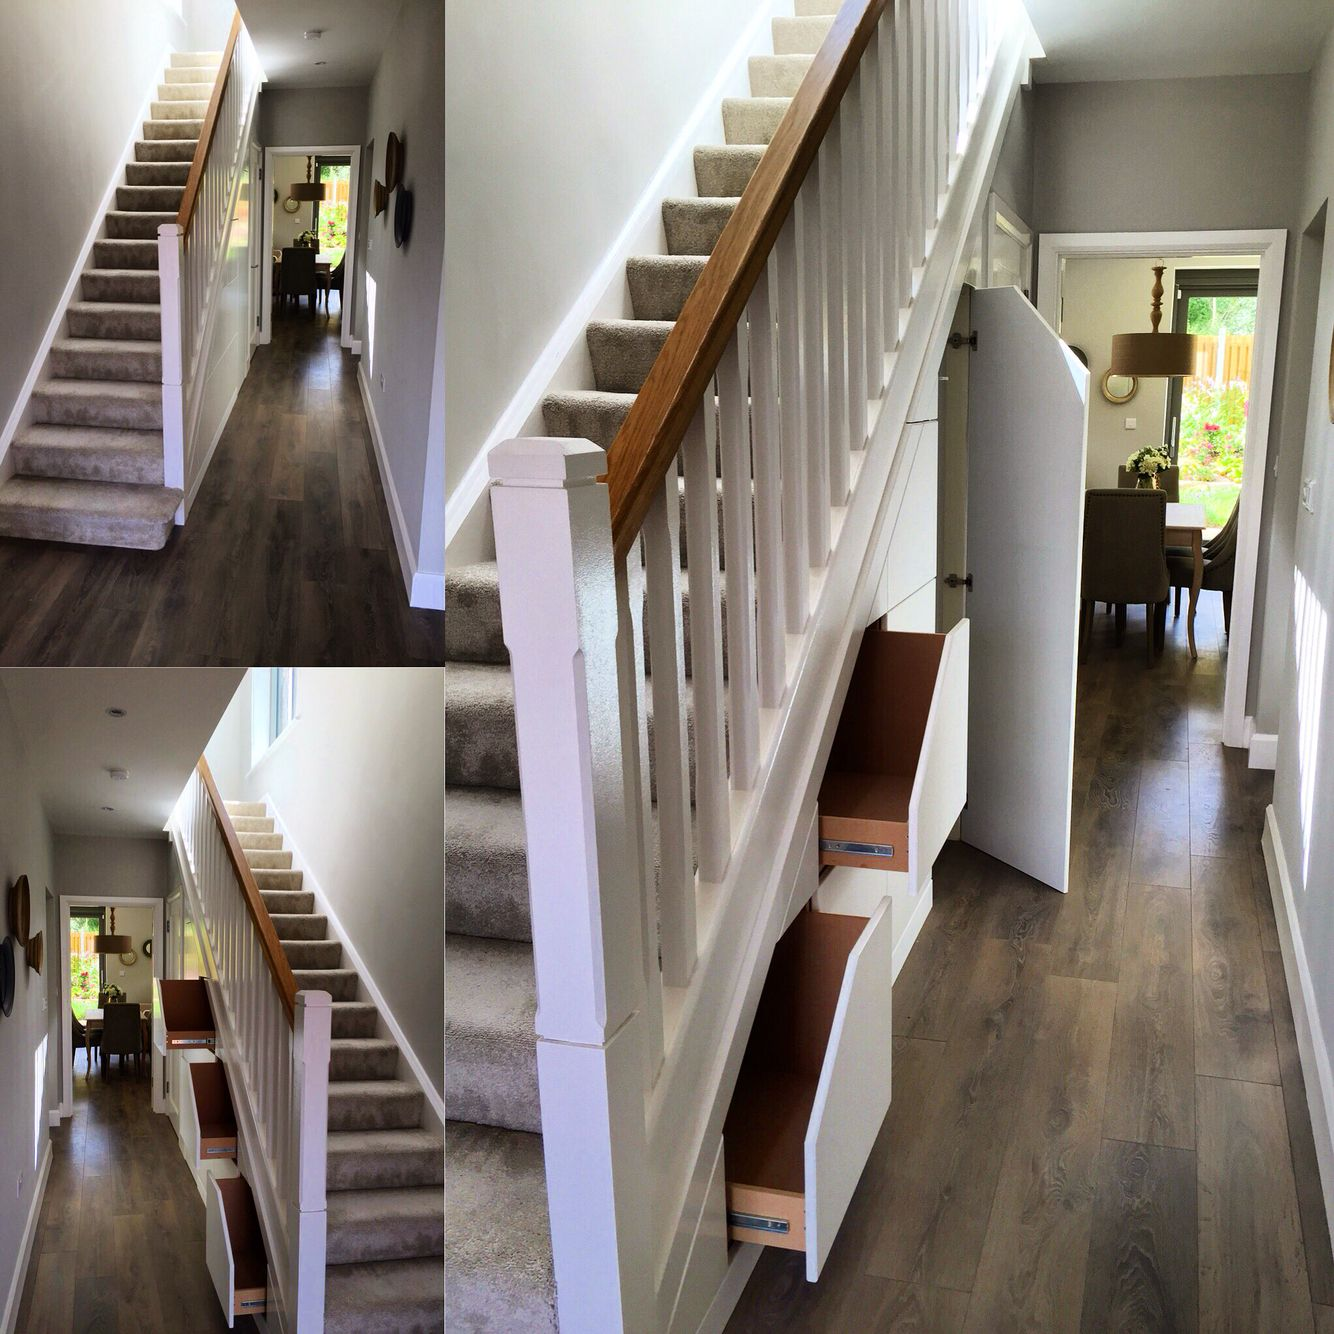 Staircase Ideas For Your Hallway That Will Really Make An: Stair Storage, Smart